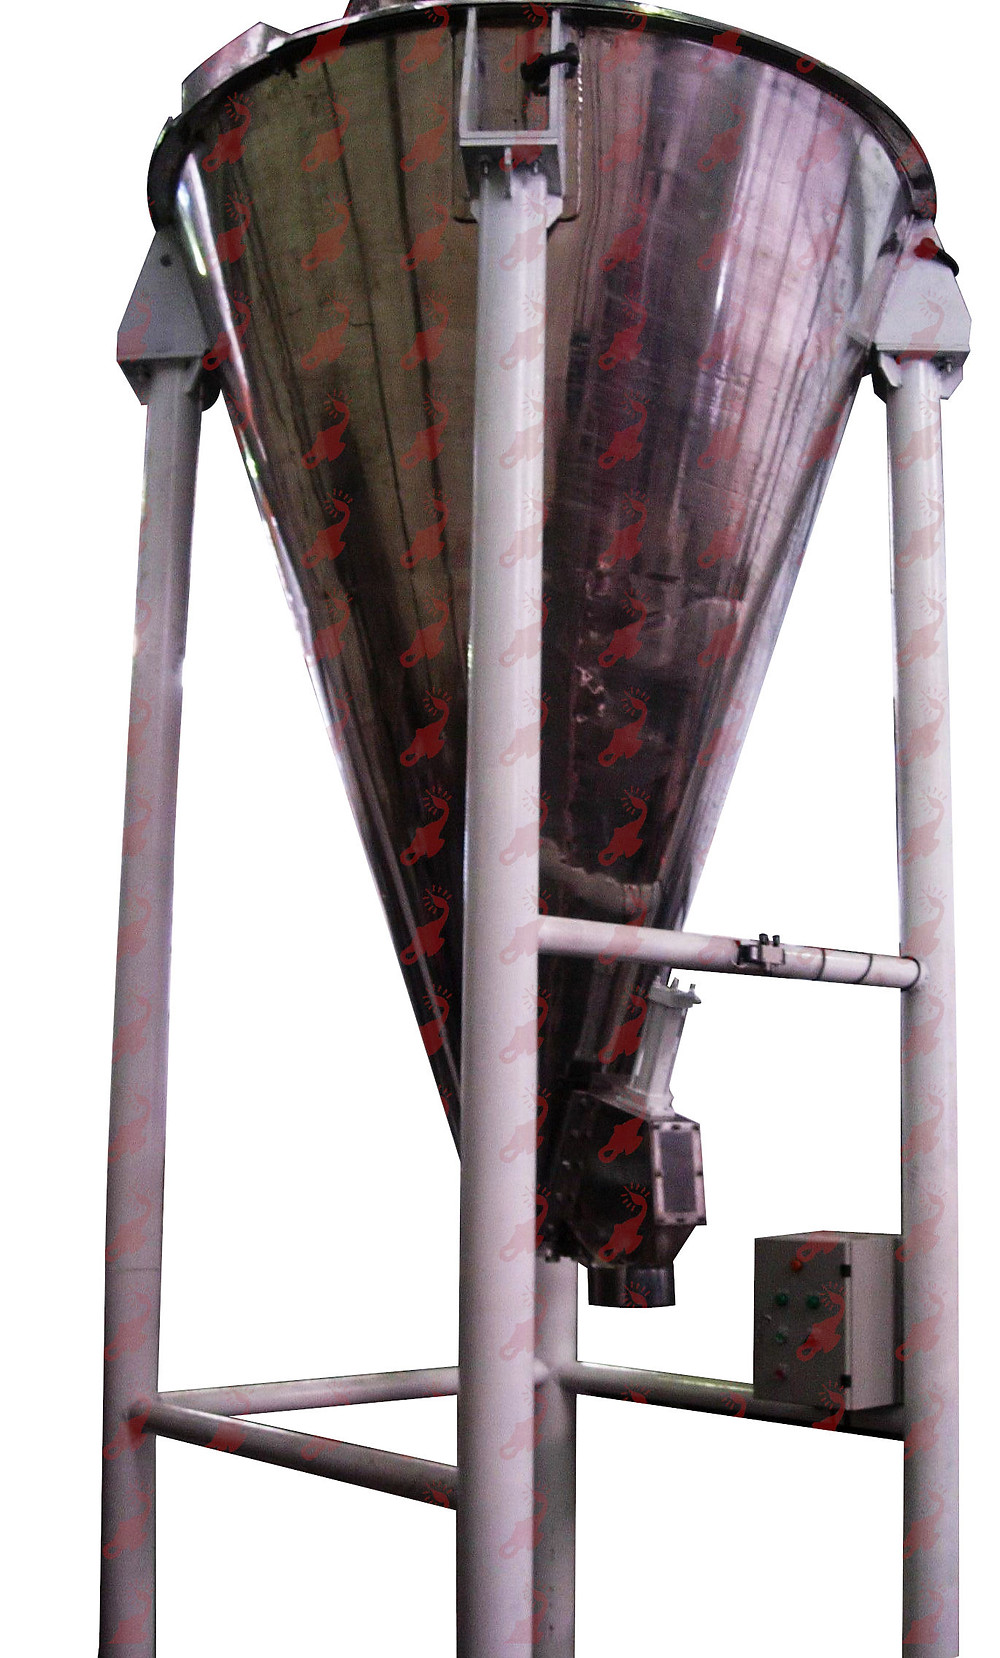 Vertical Cone Mixer for food dye